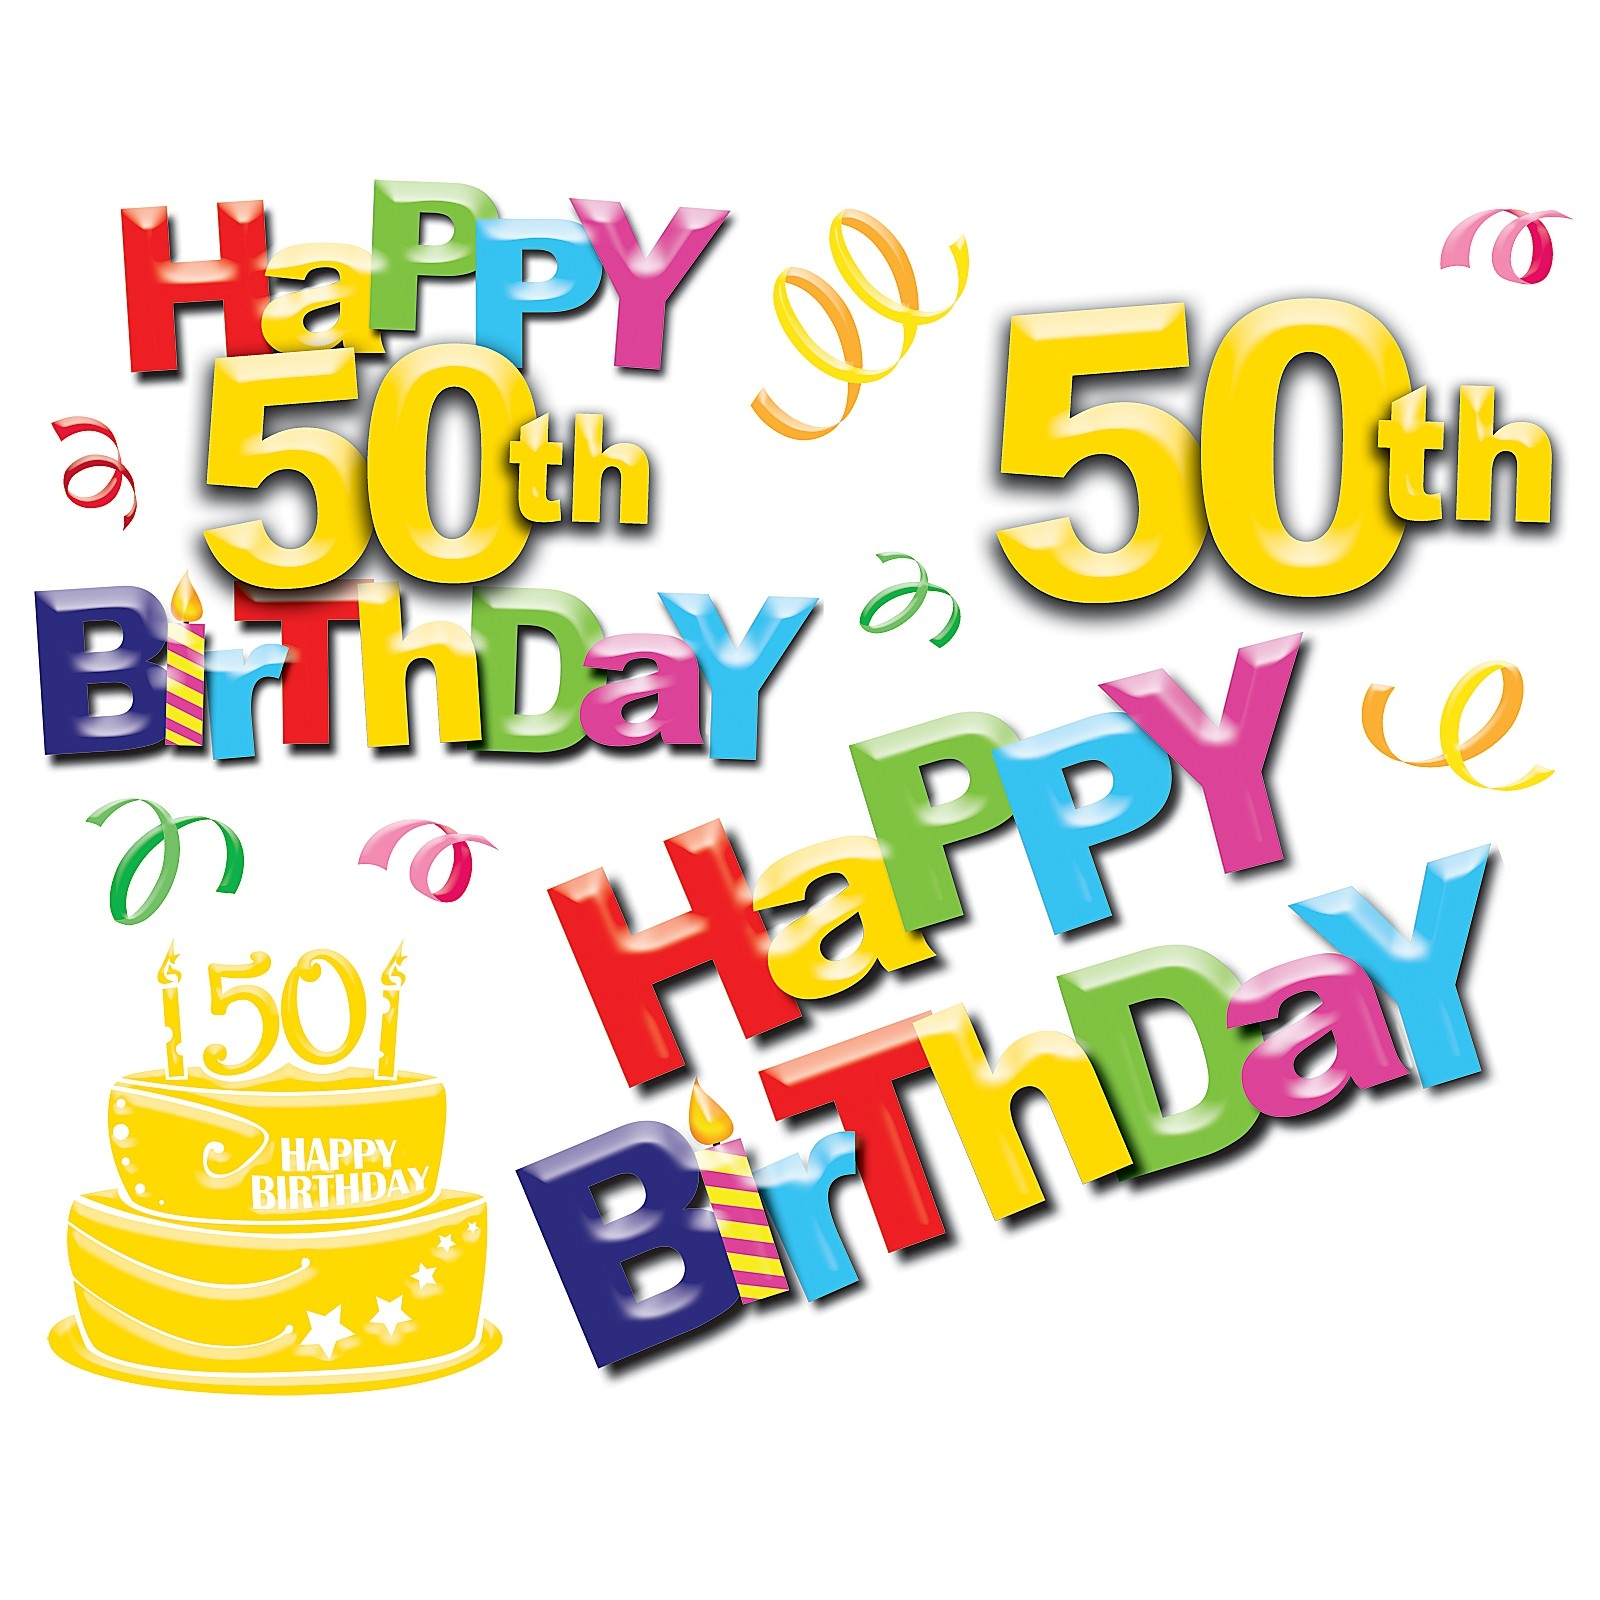 50th birthday pictures clip art ; 50th%2520birthday%2520clipart%2520funny%2520;%2520funny-happy-50th-birthday-images-funny-happy-50th-birthday-images-fresh-free-happy-50th-birthday-clip-art-clip-art-library